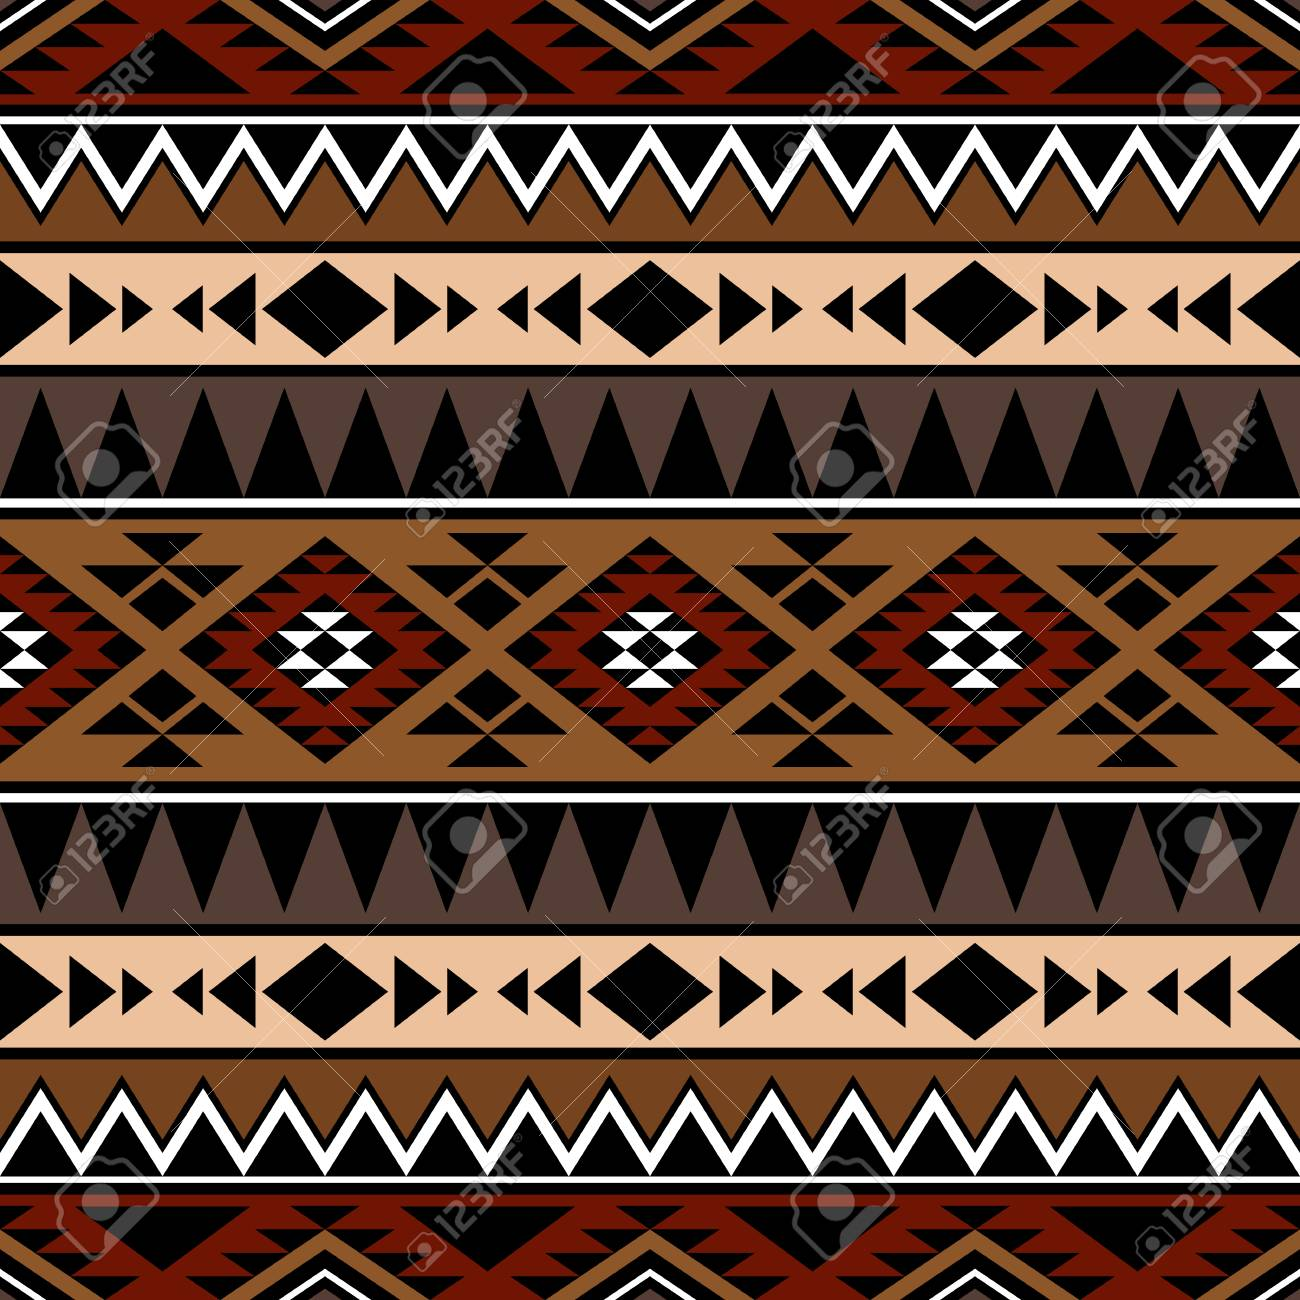 Abstract Seamless Pattern With Tribal Aztec Ornament Boho Chic